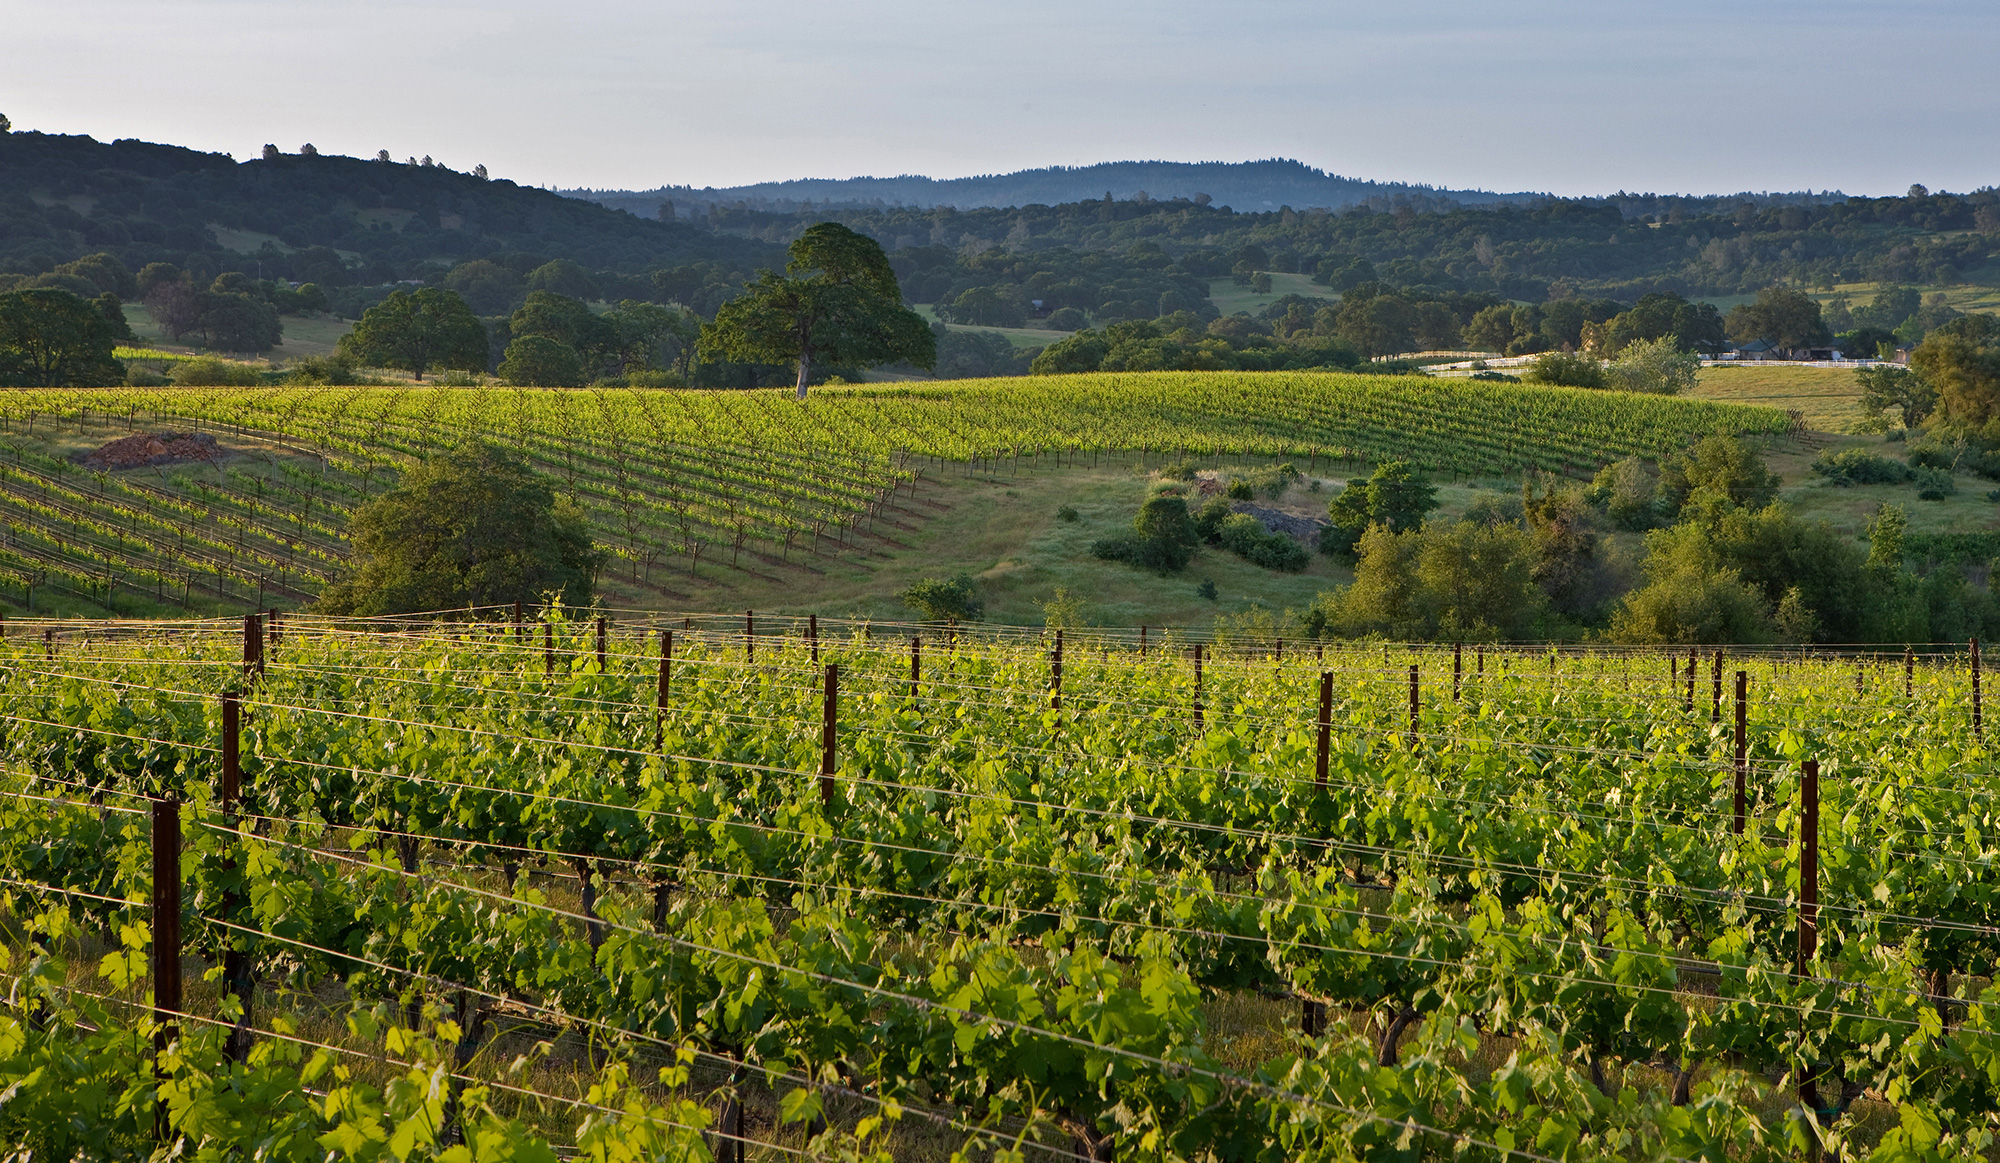 Northern Sierra Foothills Estate Winery & Vineyard